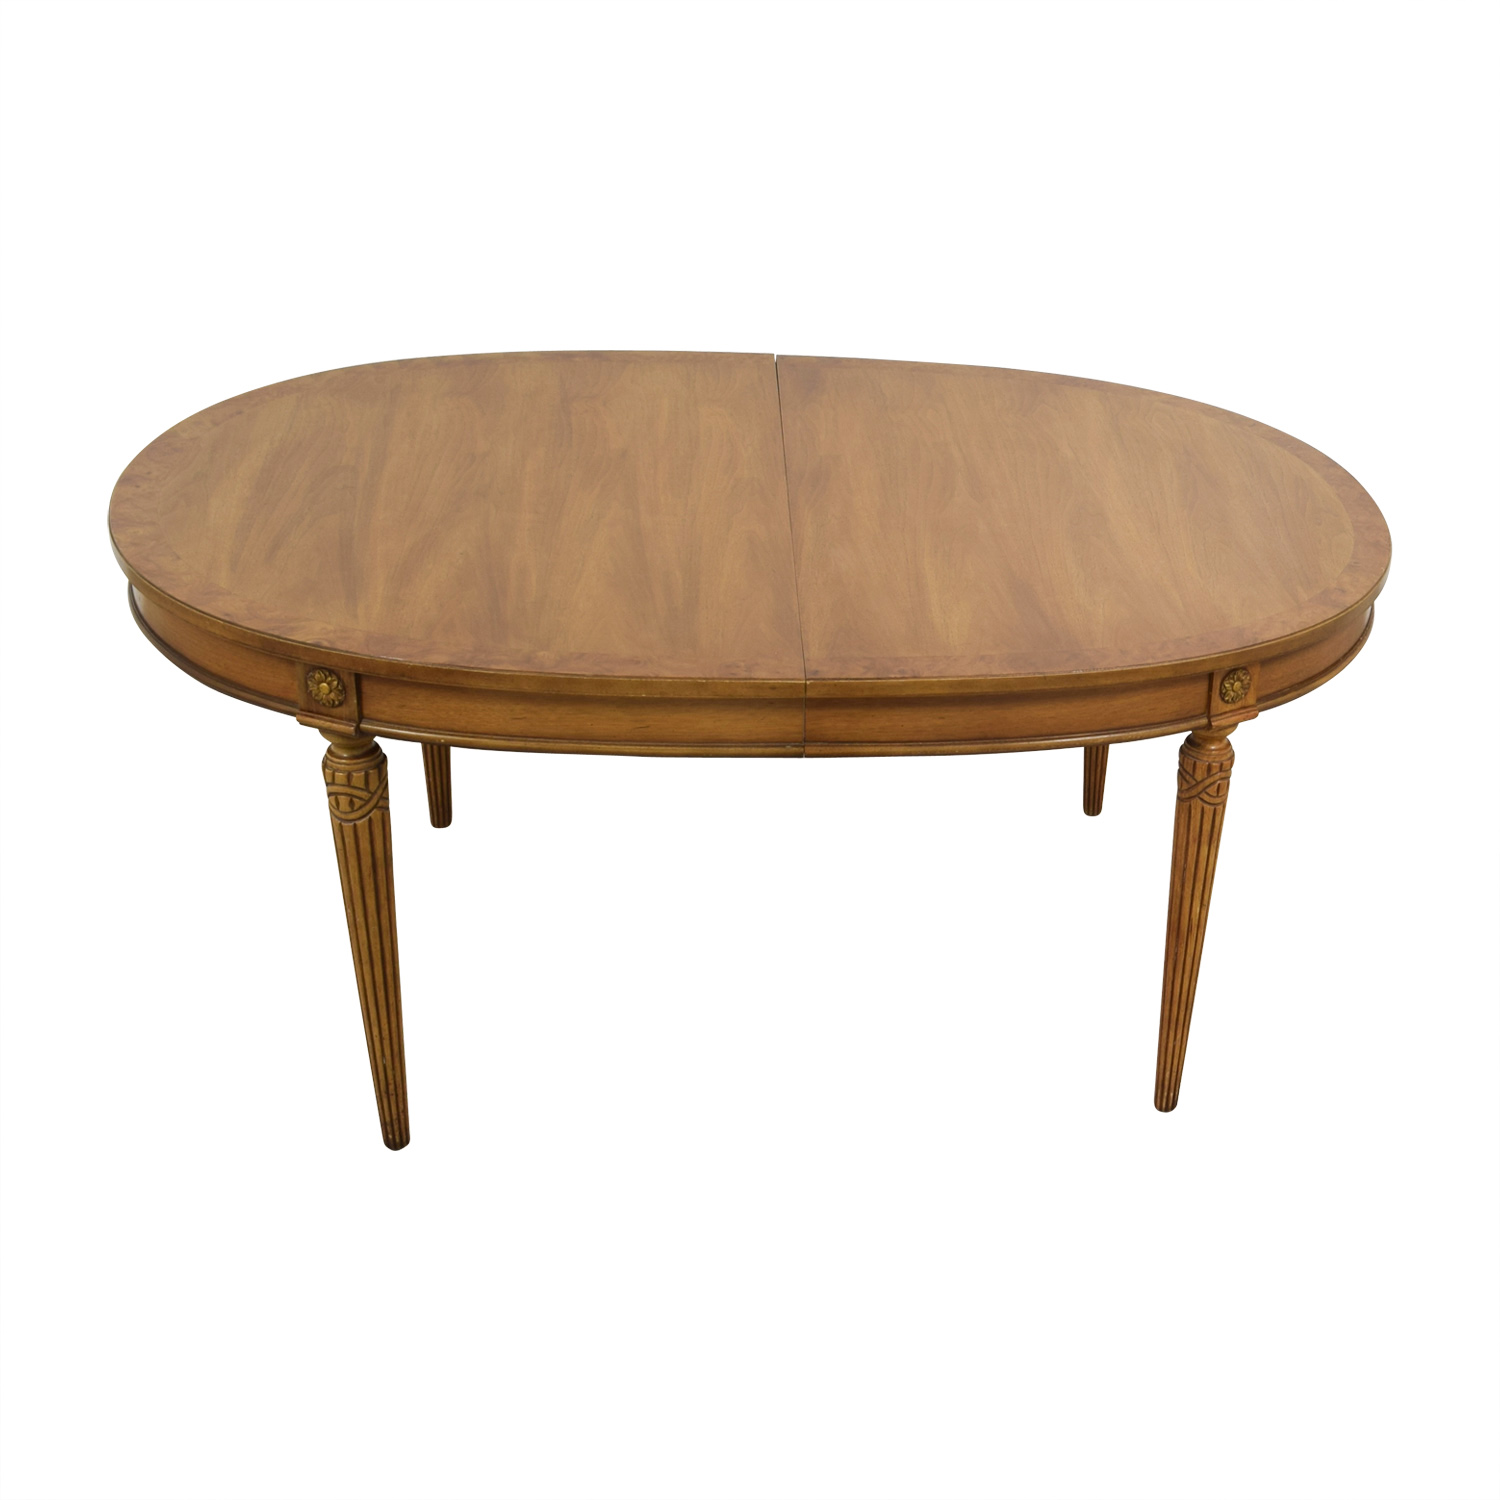 buy Thomasville Thomasville Oblong Extendable Dining Room Table online